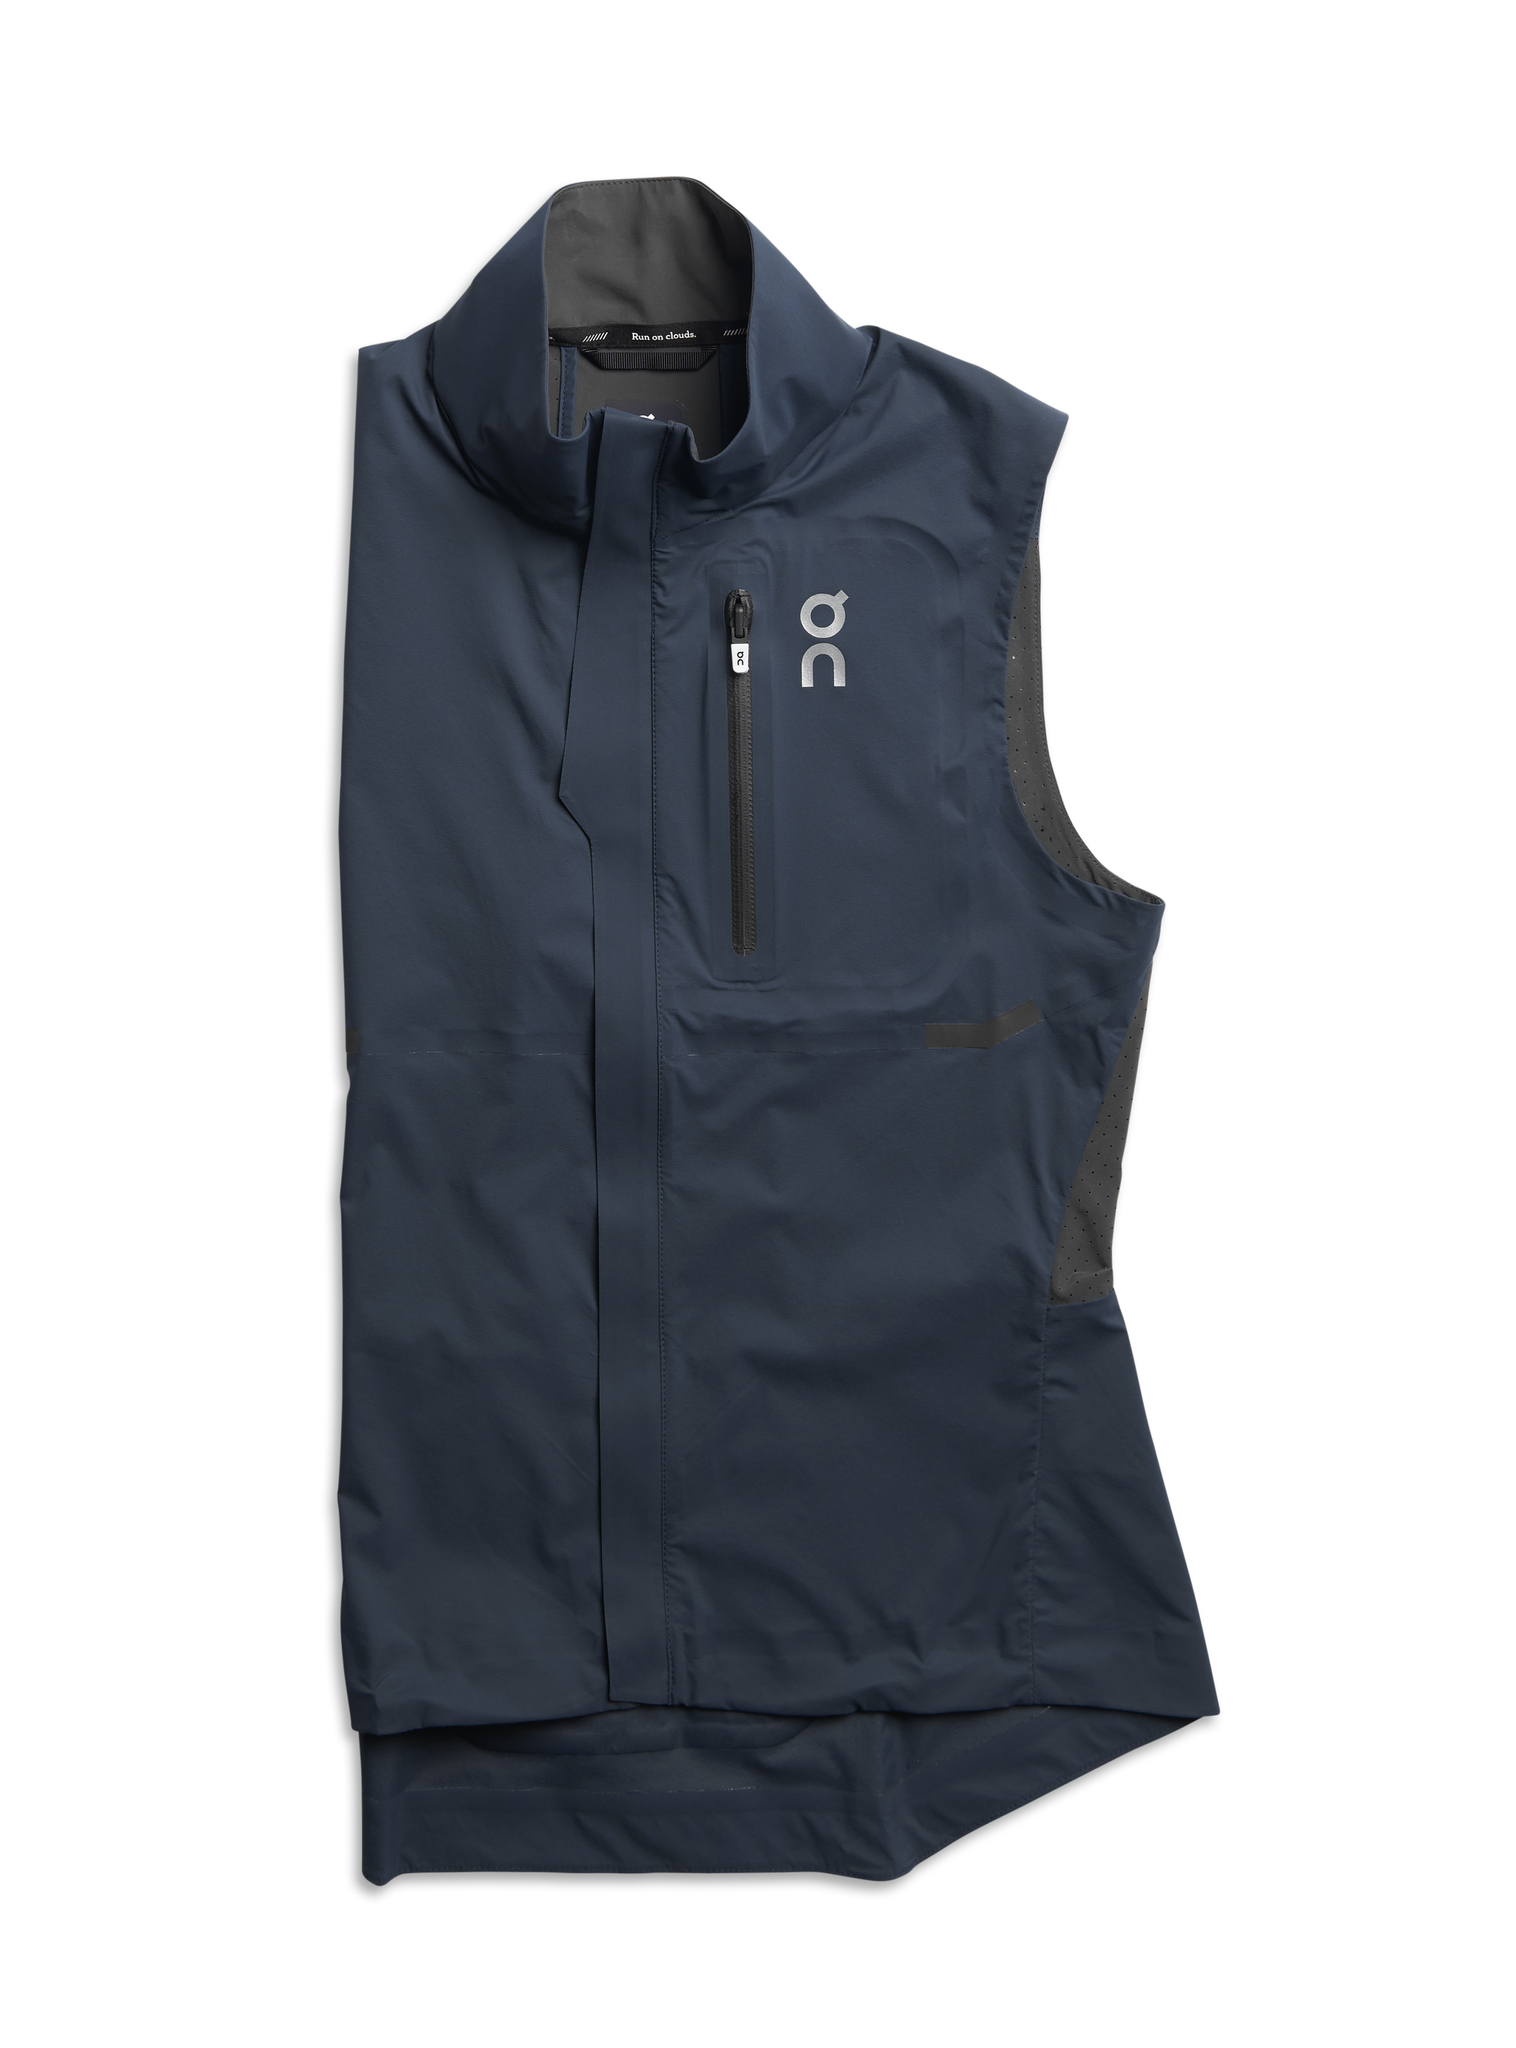 Women's On Weather-Vest - Color: Navy/Shadow Size: M, Navy, large, image 1